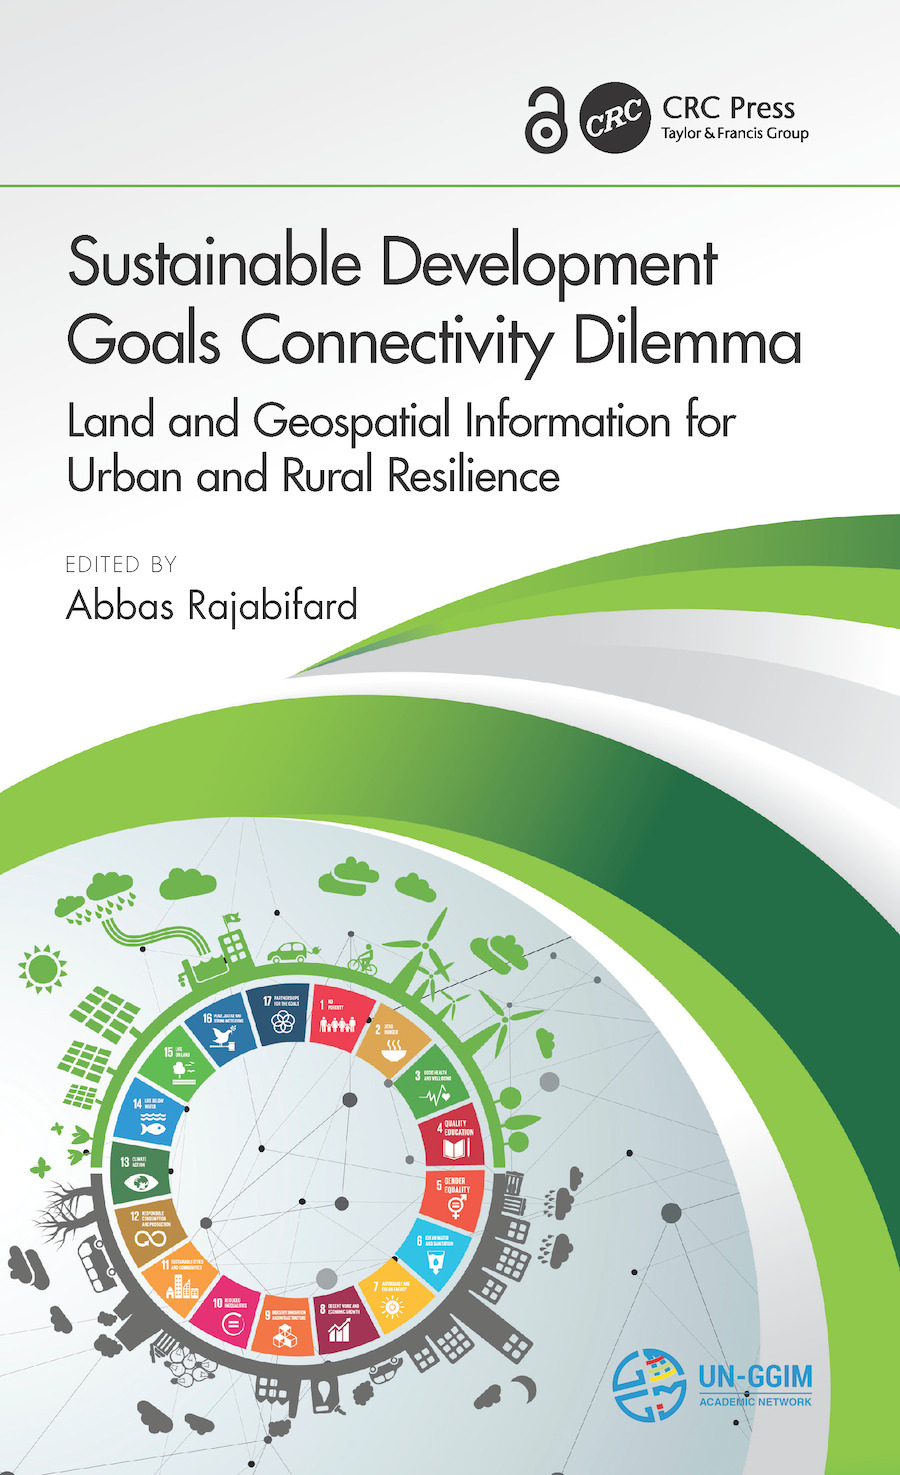 Sustainable Development Goals Connectivity Dilemma